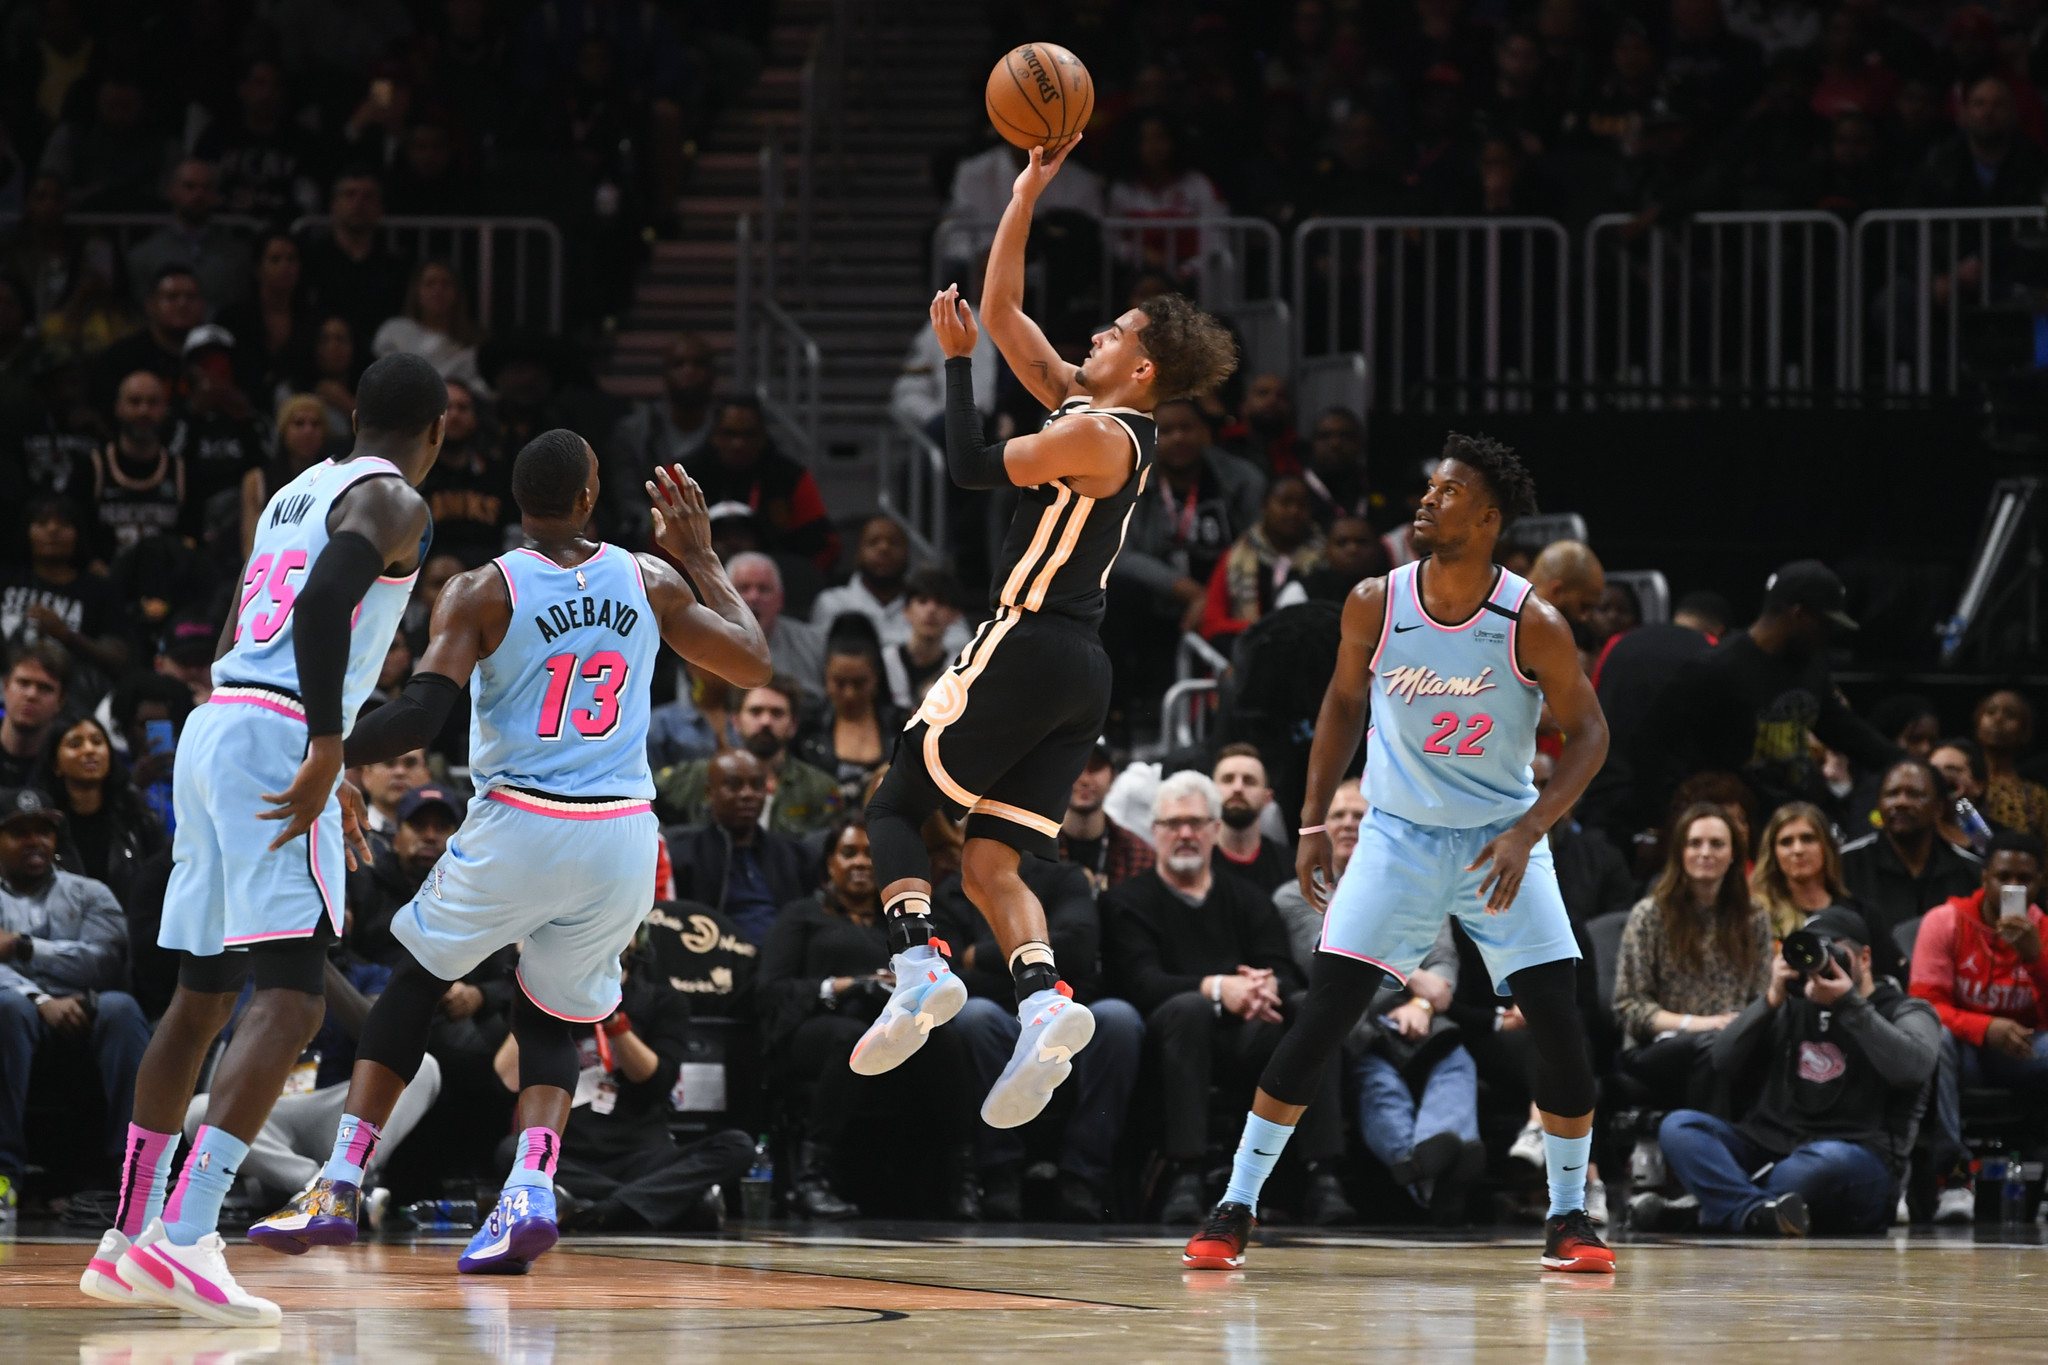 Trae Young is the heavy favorite in H-O-R-S-E, unless dunking is allowed